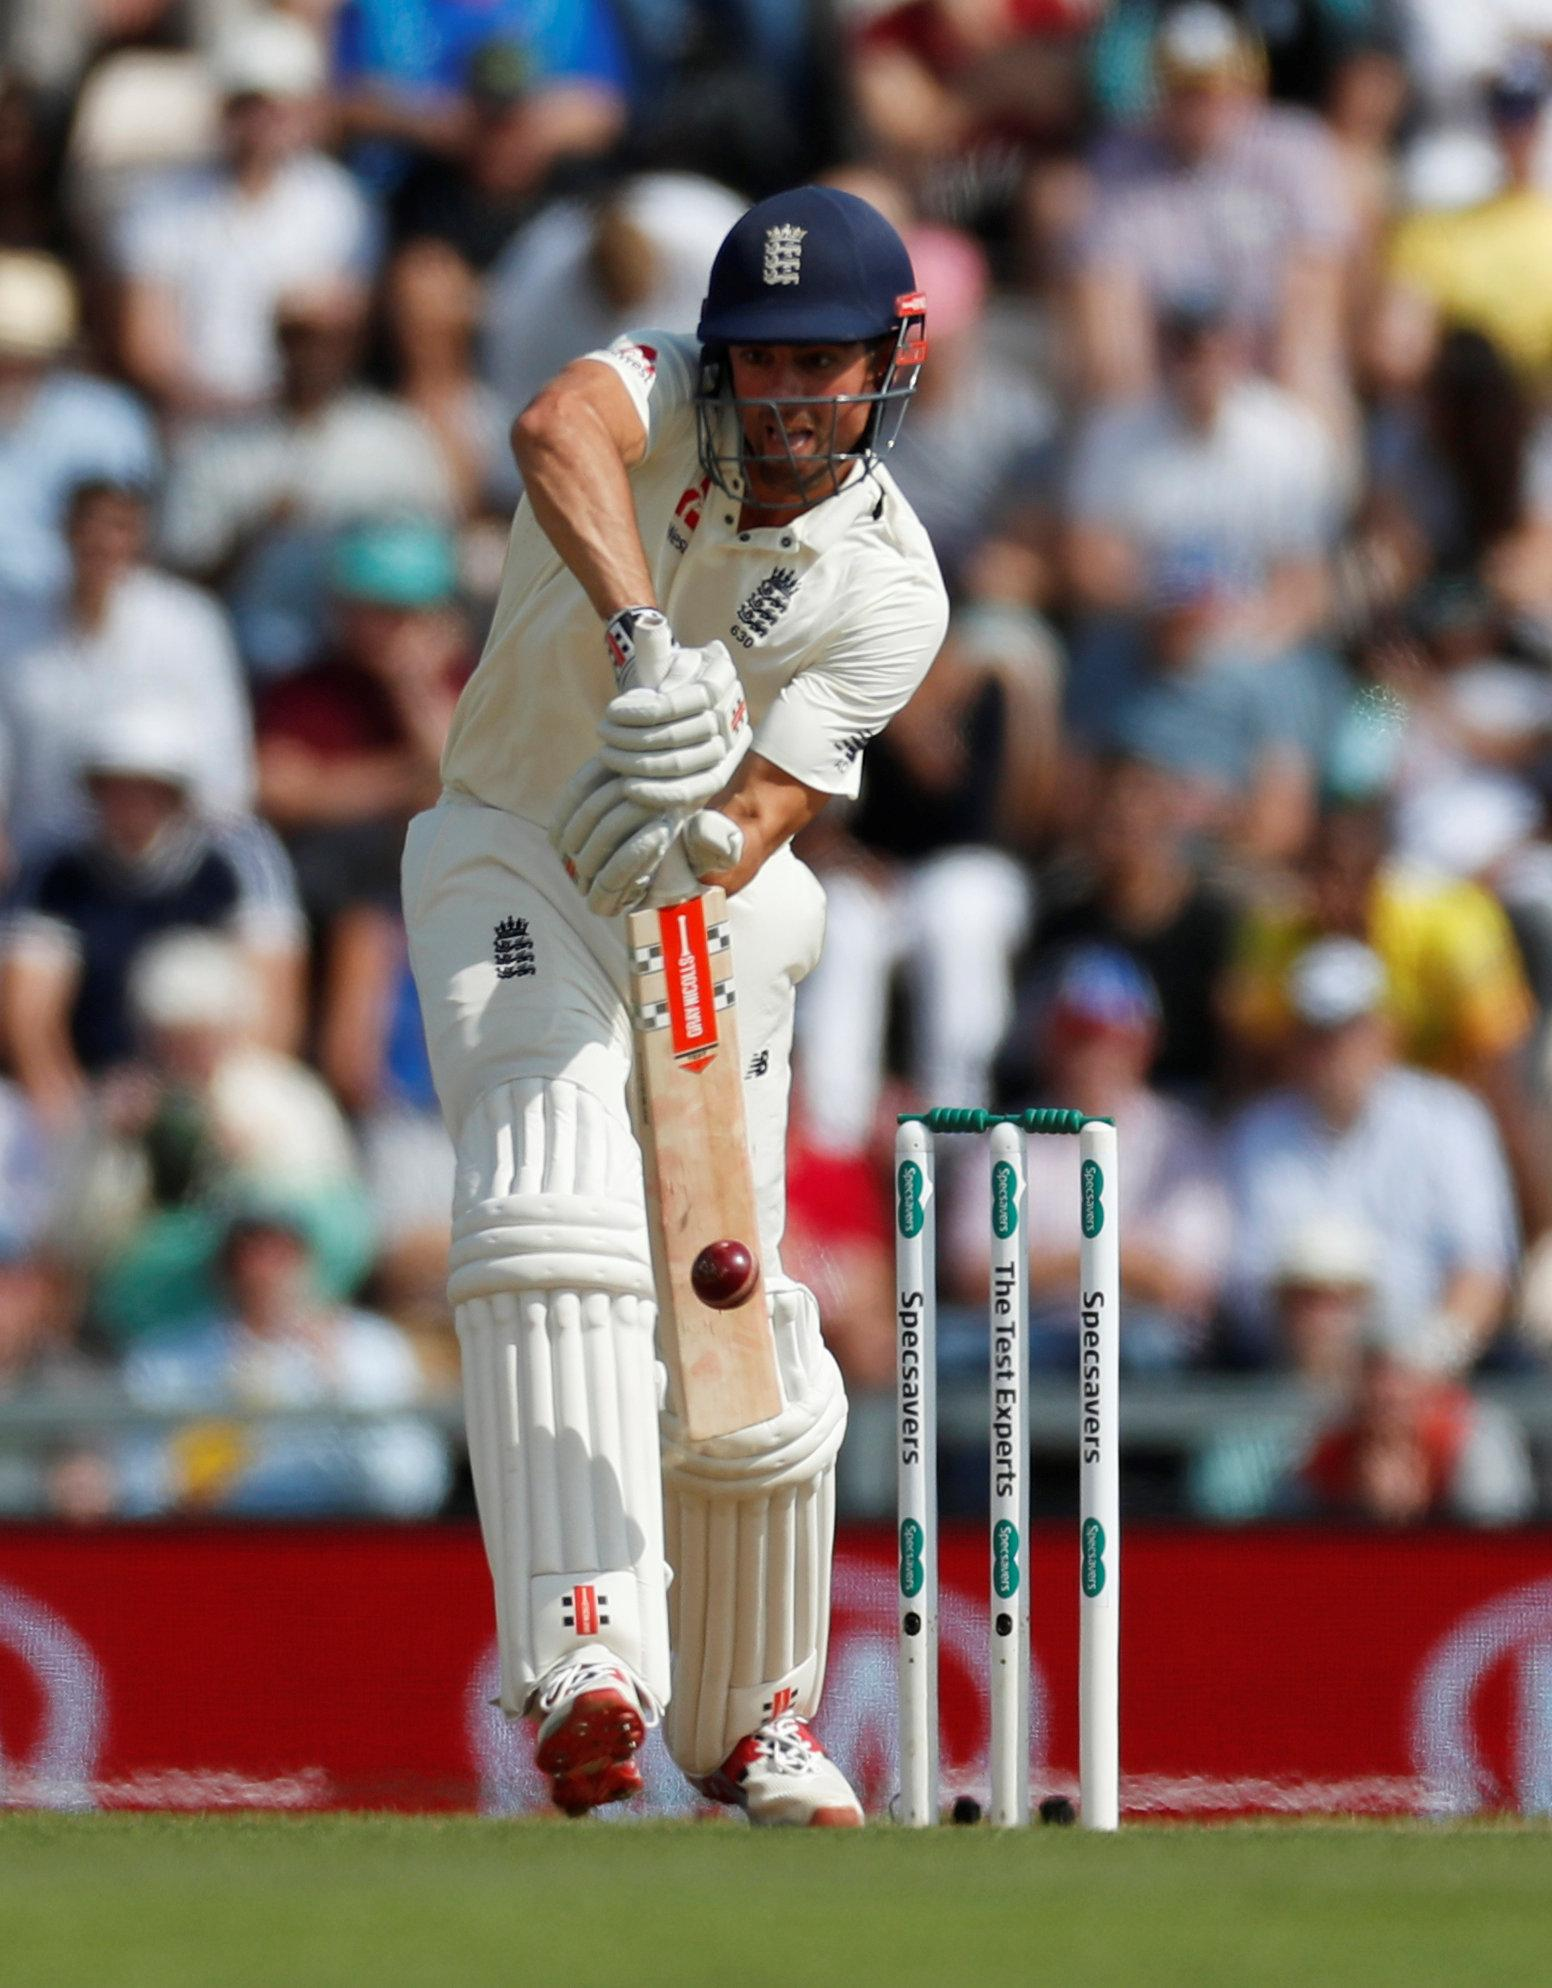 Alastair Cook has endured a rocky series against India this summer